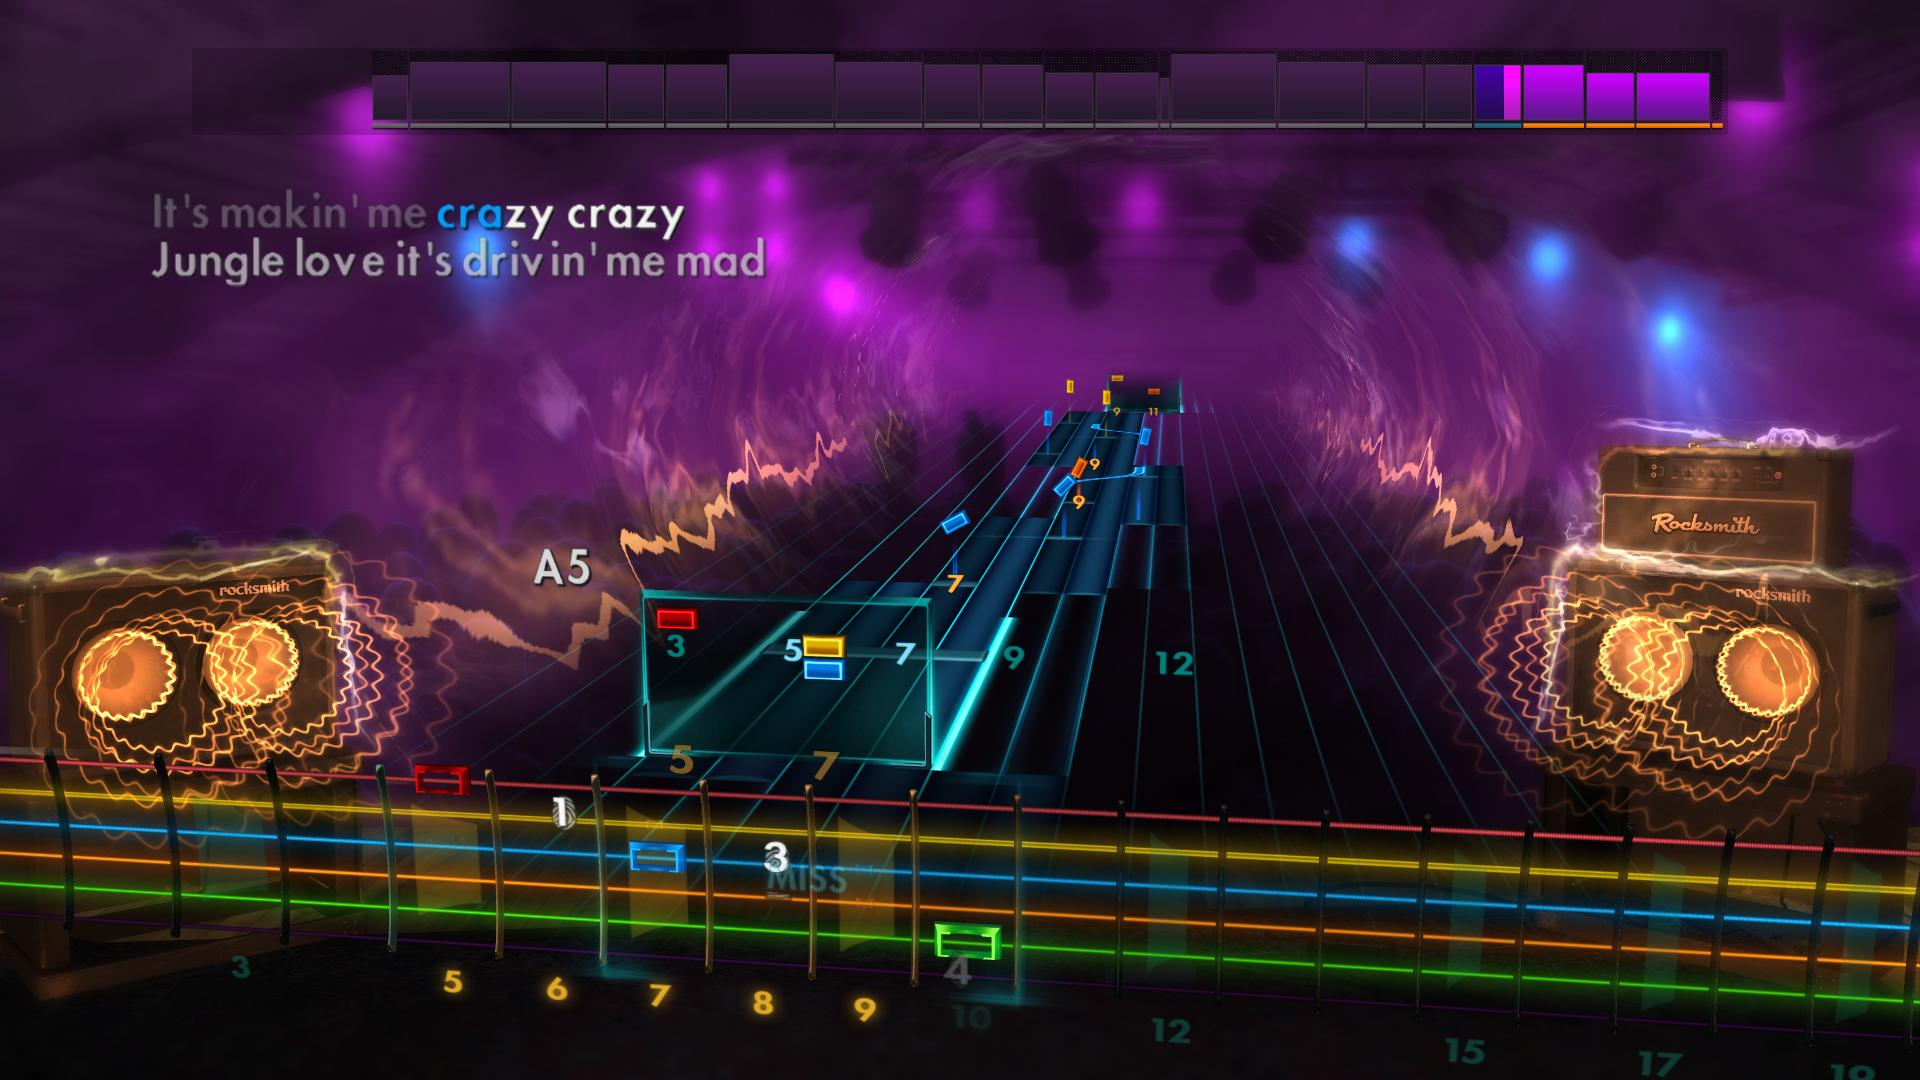 Rocksmith 2014 Edition: Remastered - 70s Mix Song Pack V 2019 pc game Img-2